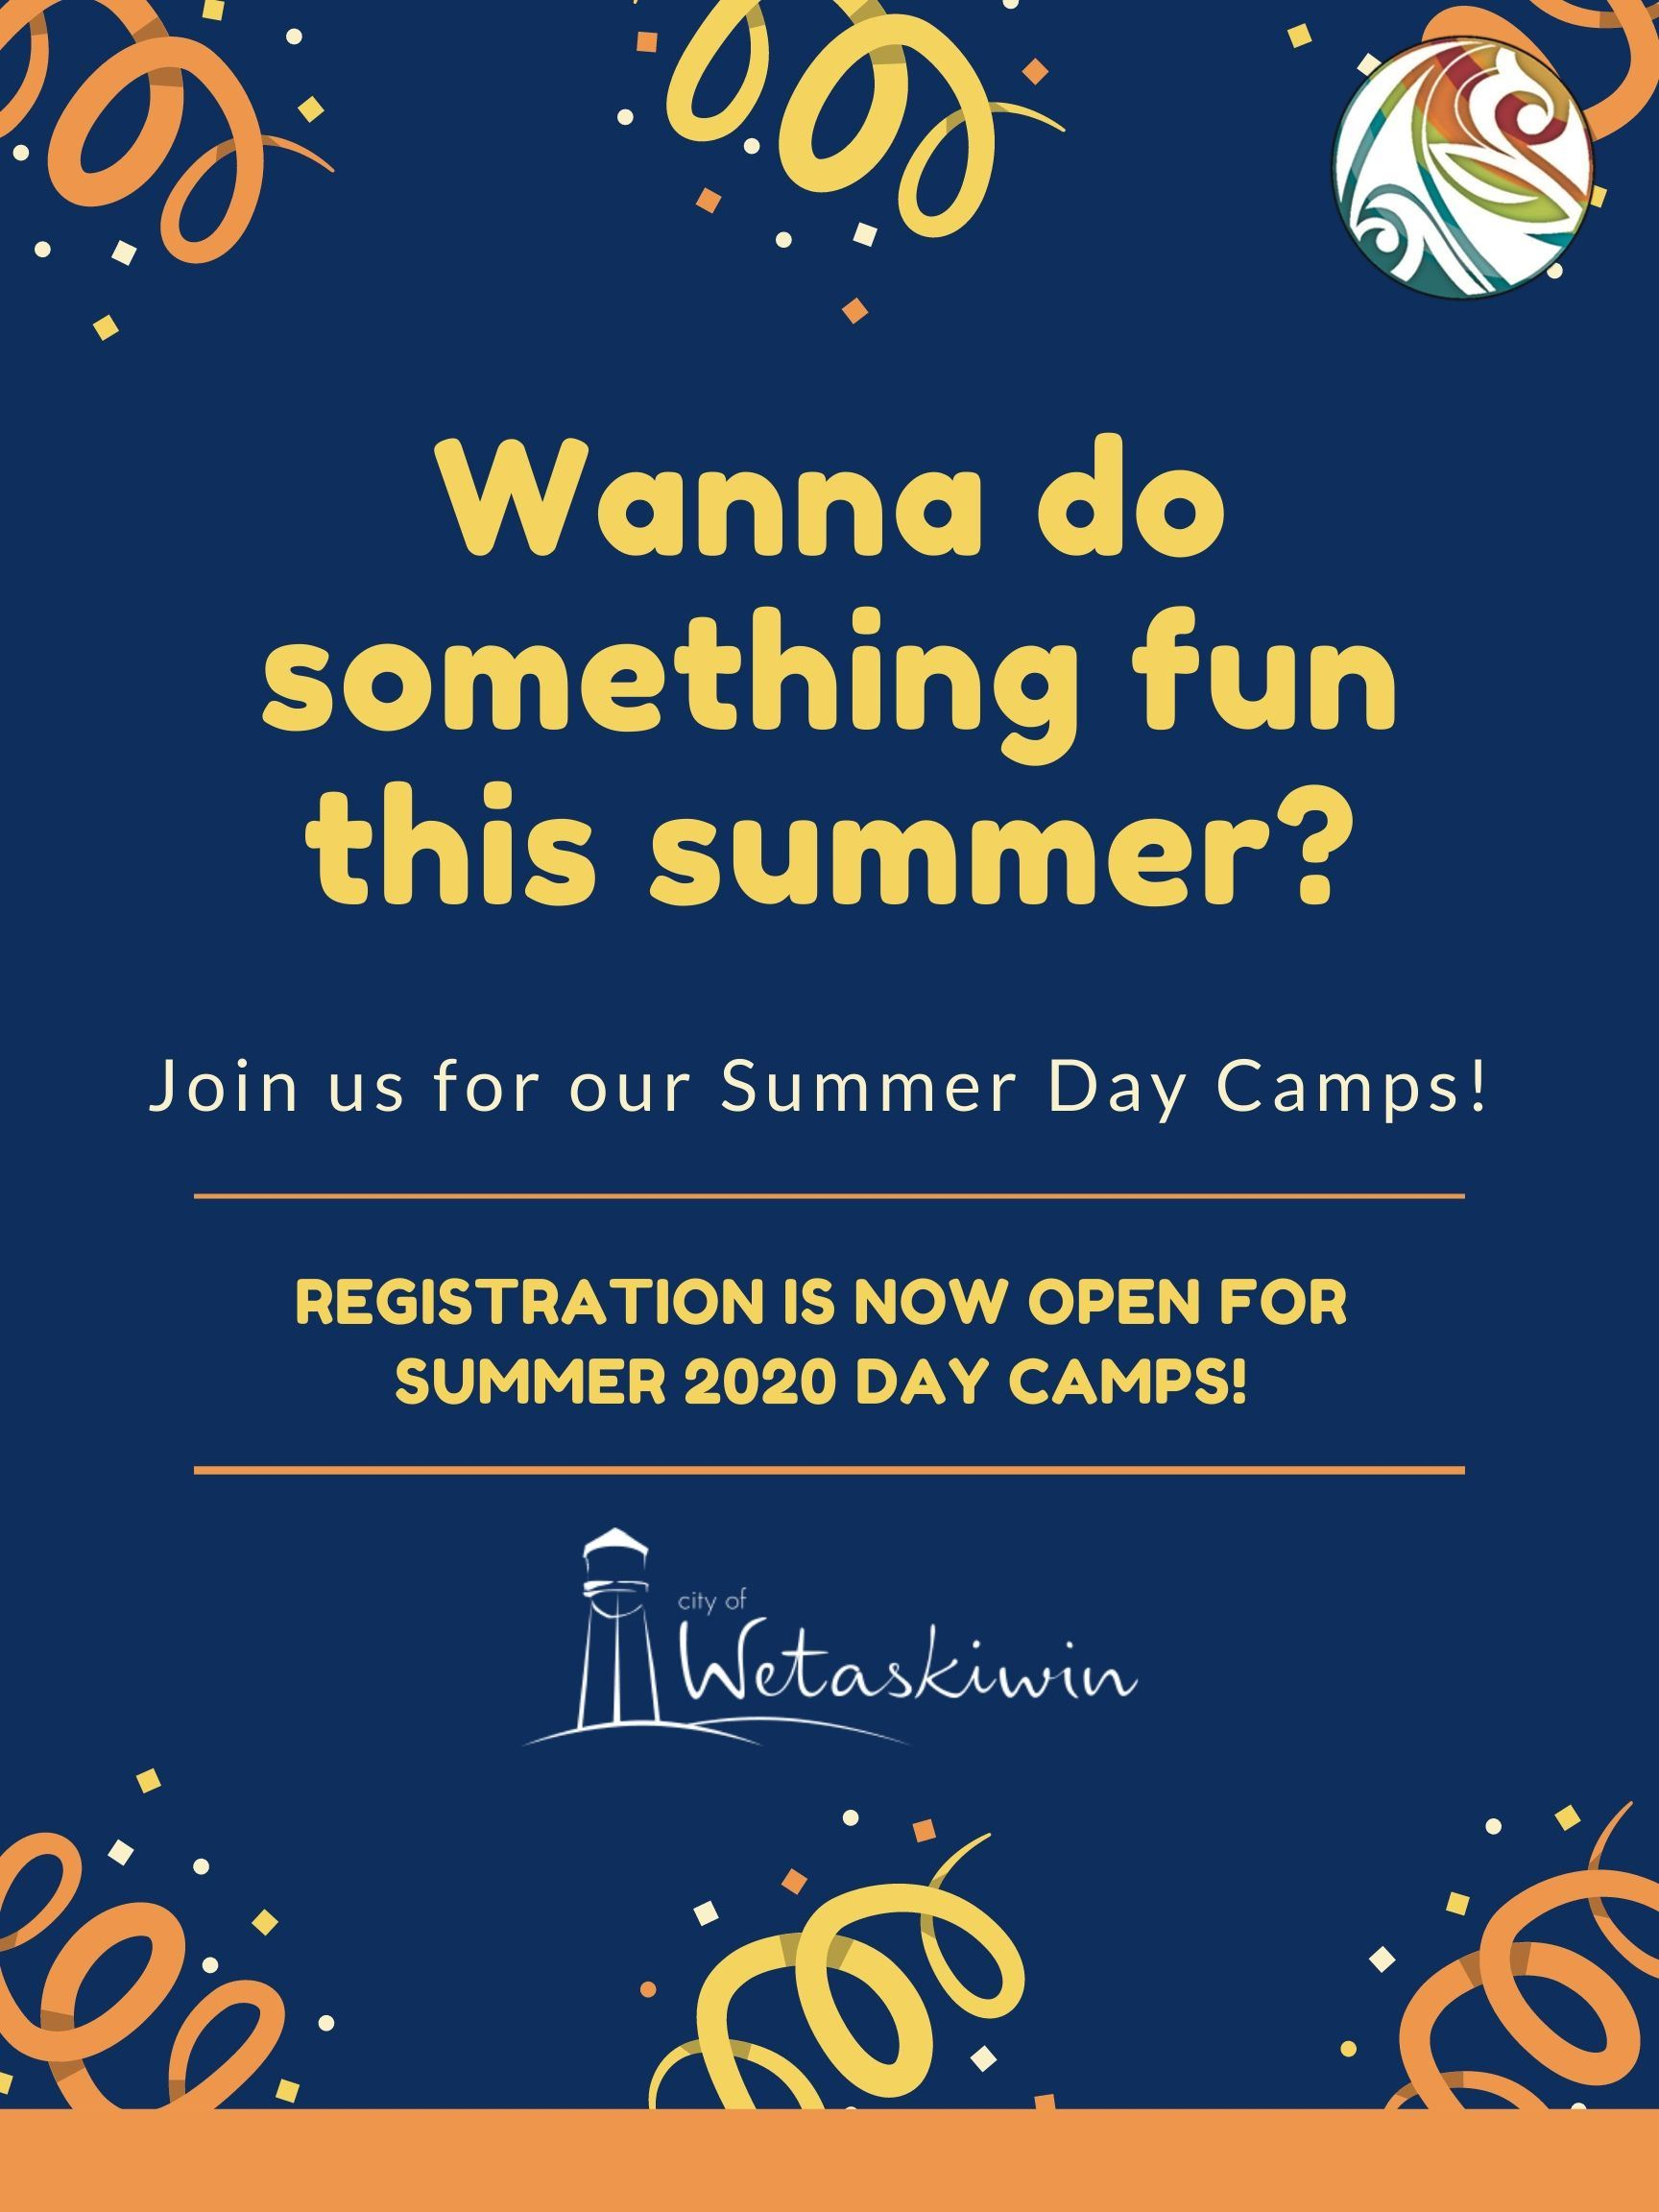 Registration is Open - Summer Day Camp 2020